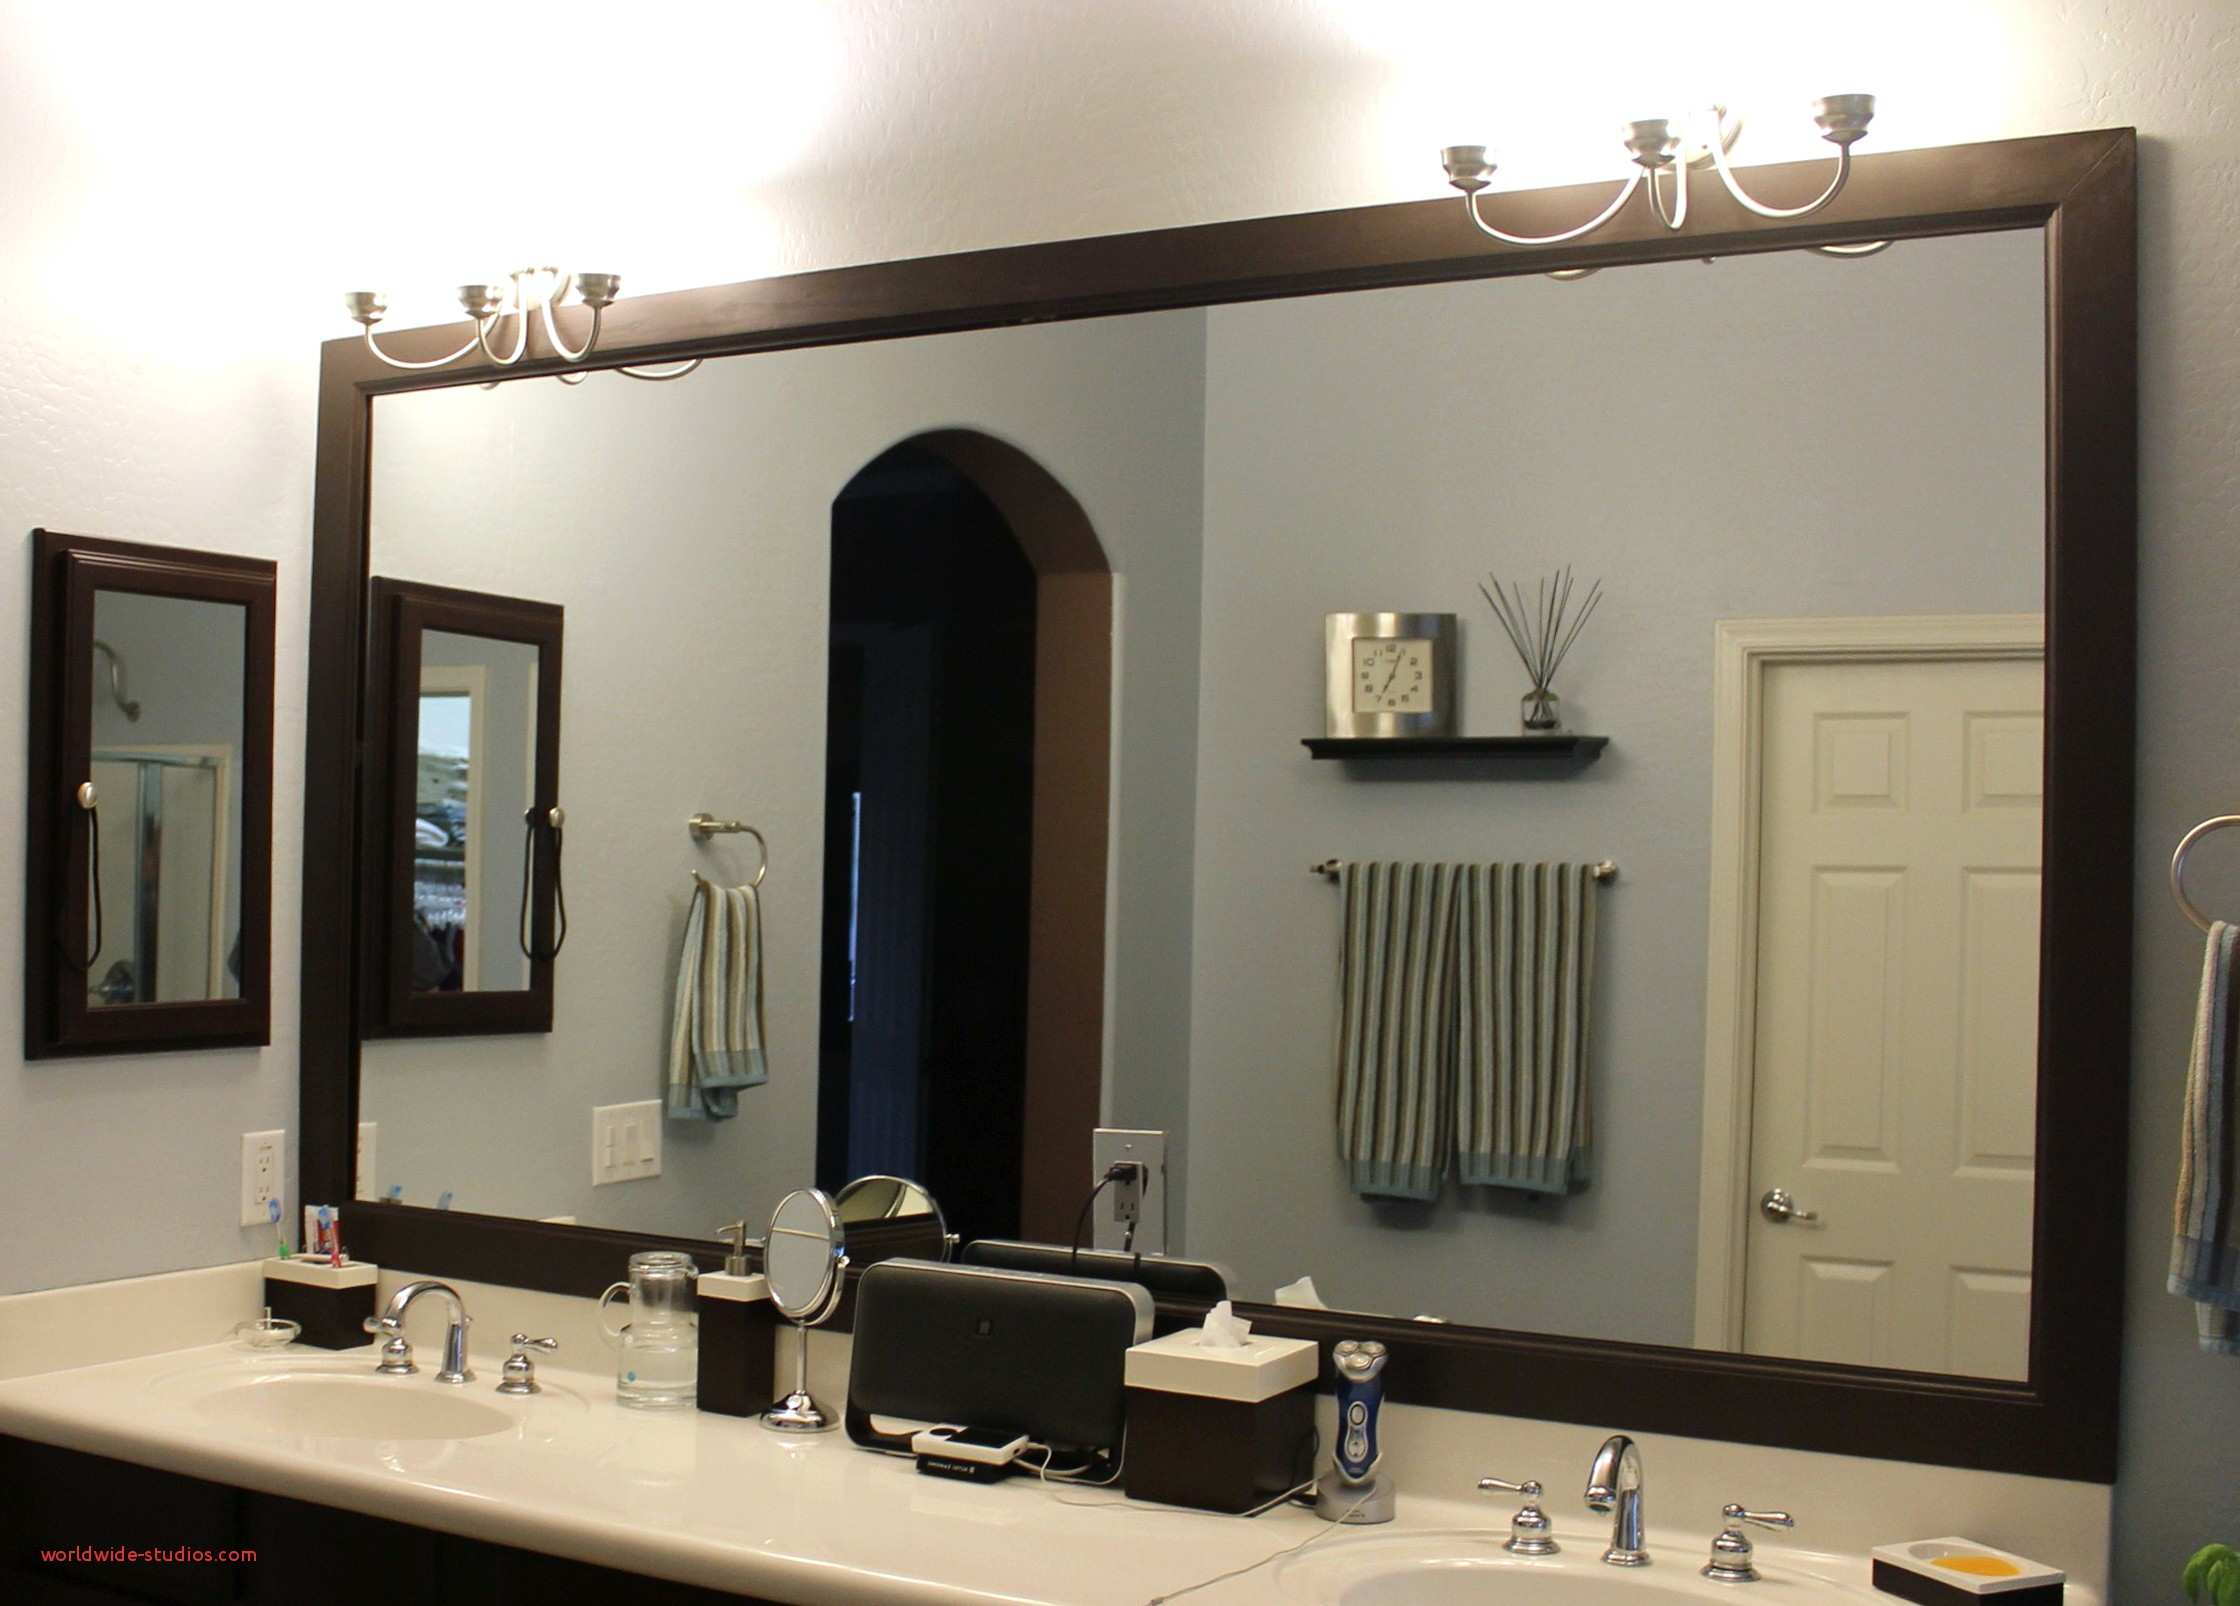 Top Result Diy Wood Frame for Mirror Best Design Bathroom Mirror